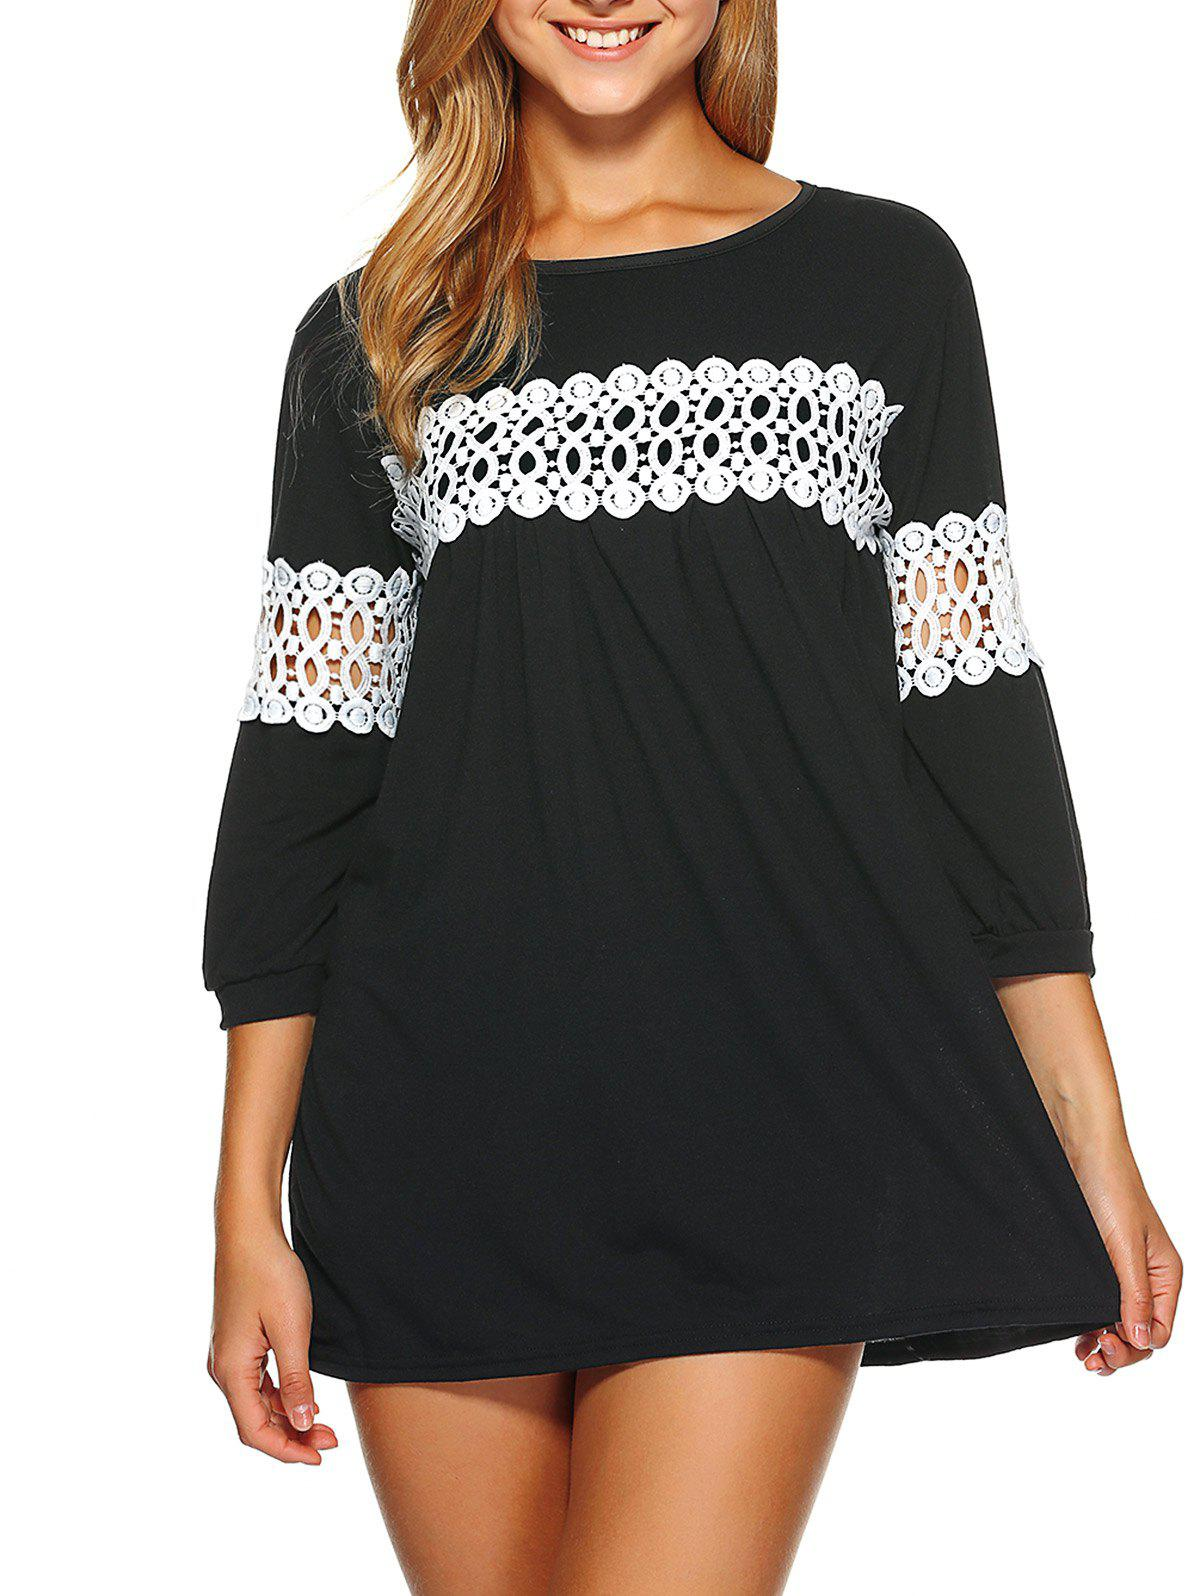 Lace Insert Loose-Fitting Mini Dress - BLACK S